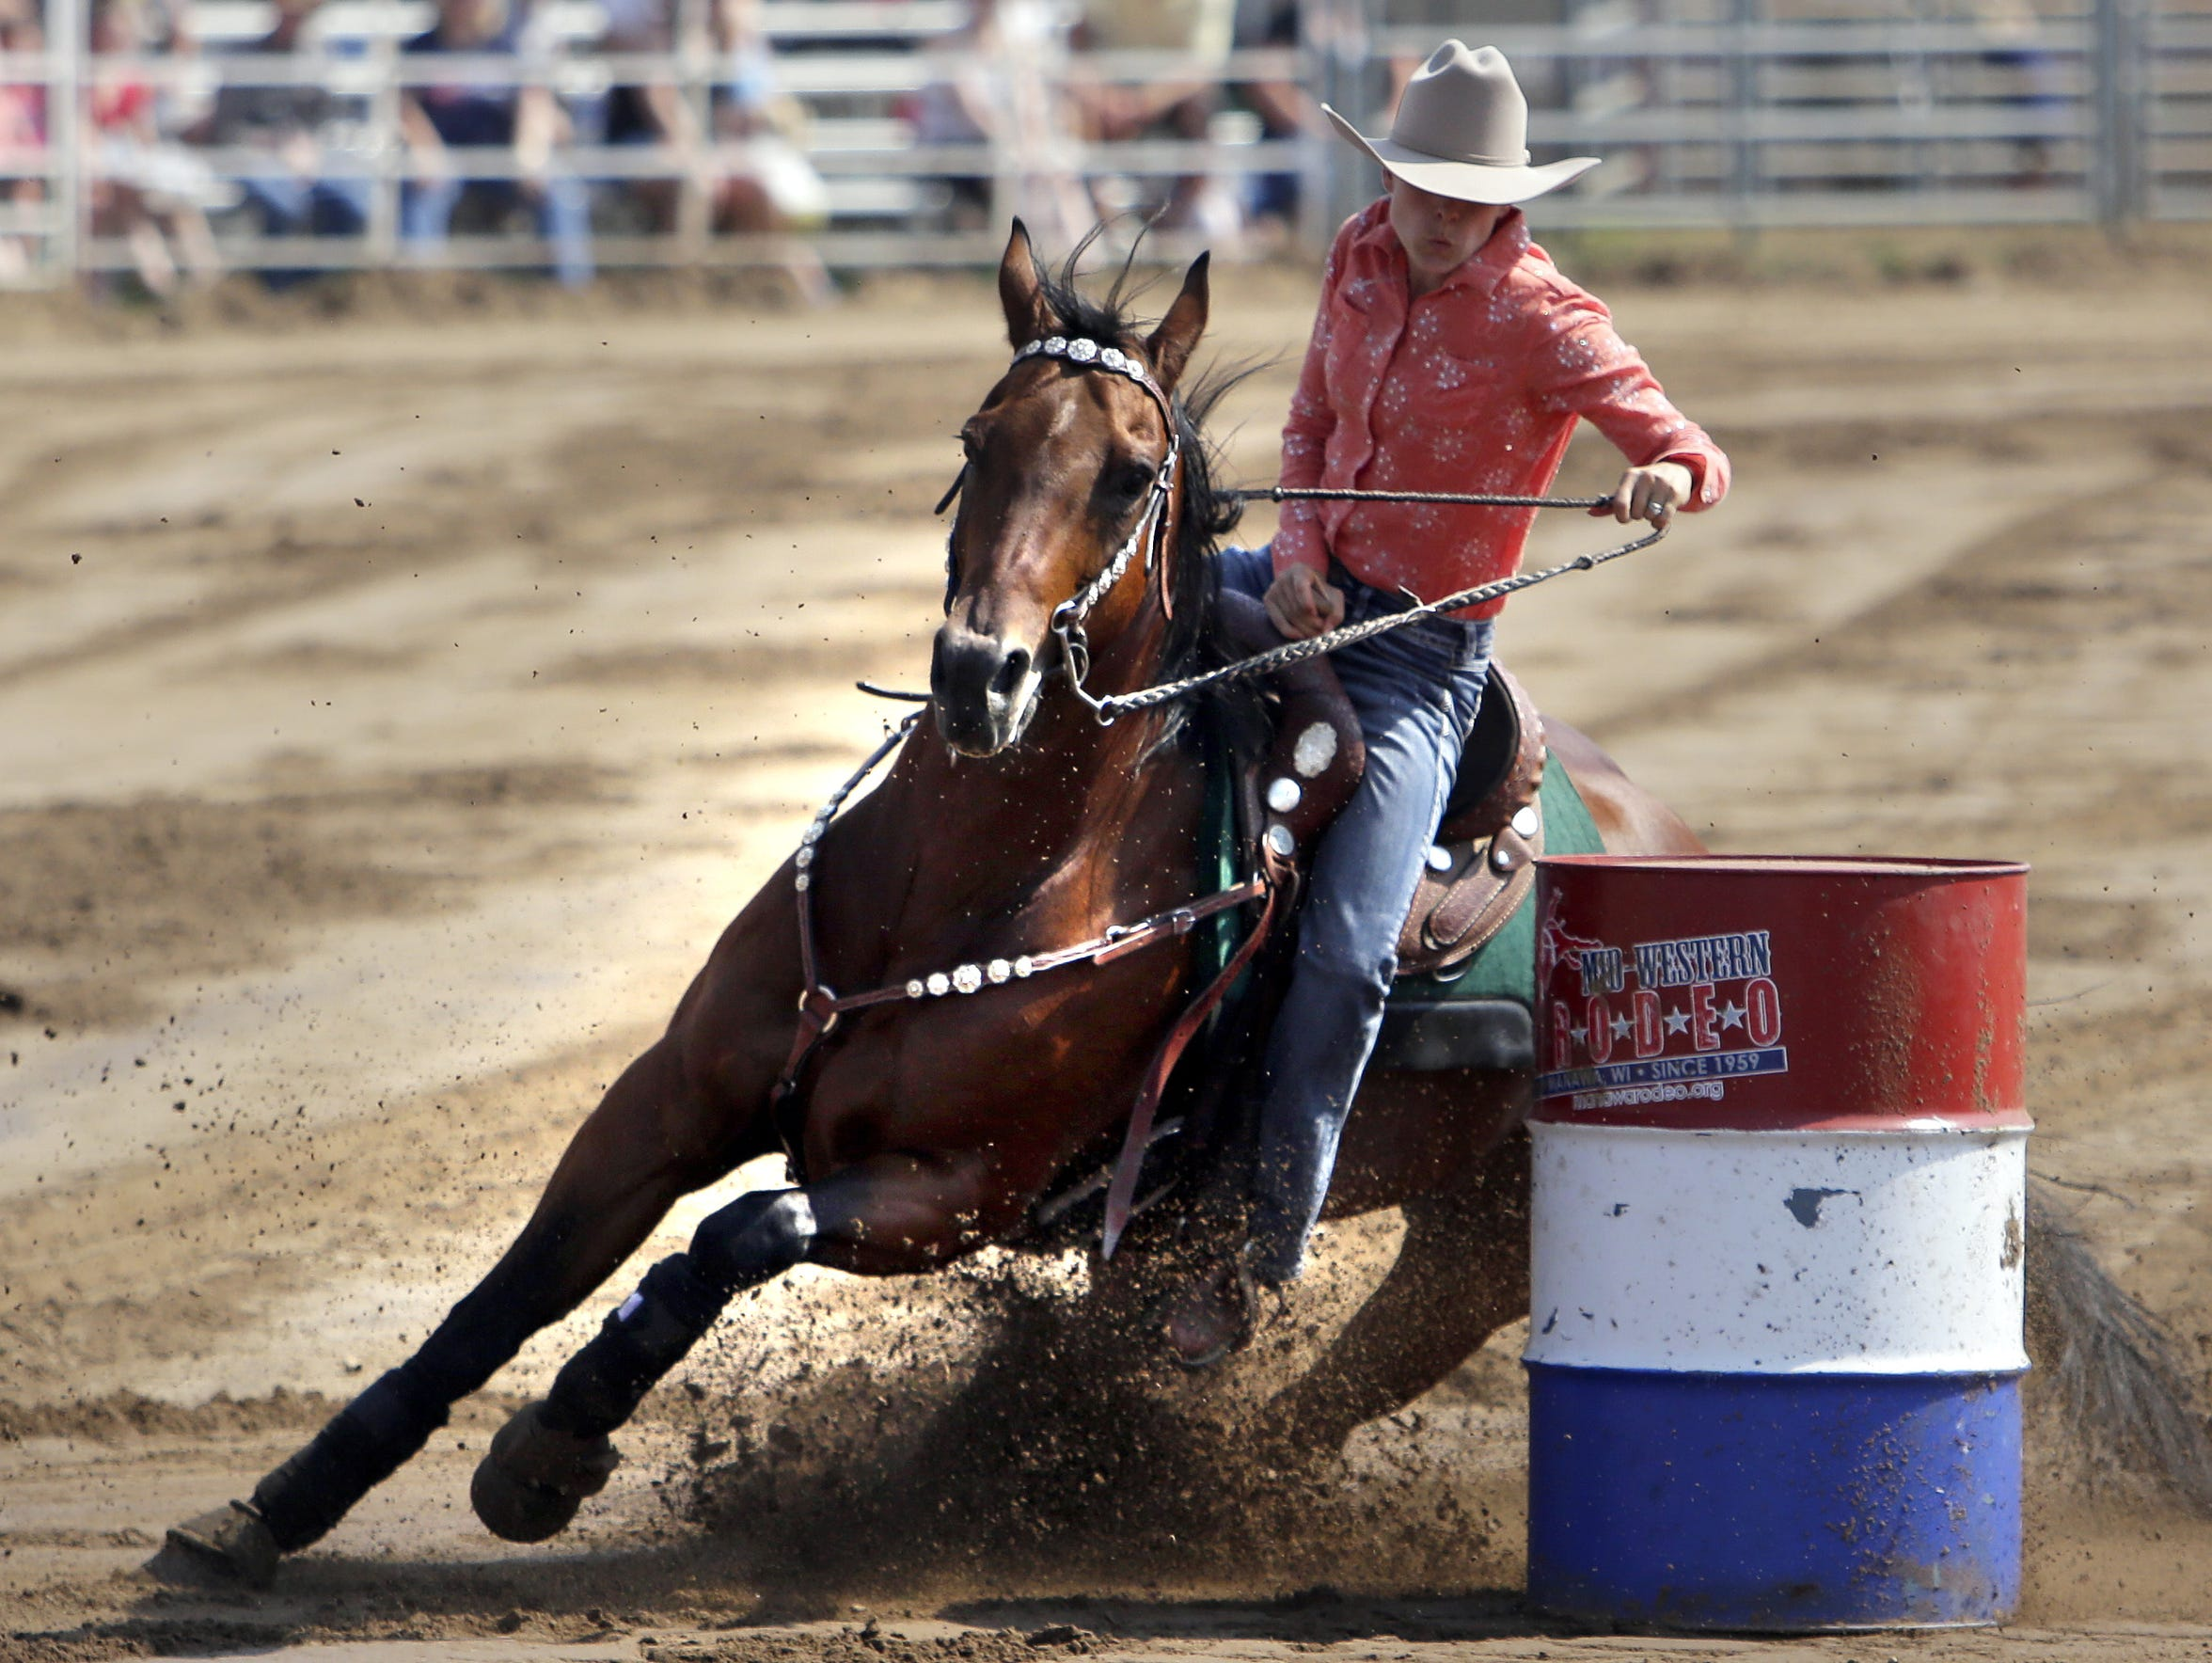 The Manawa Mid-Western Rodeo is July 2-4.